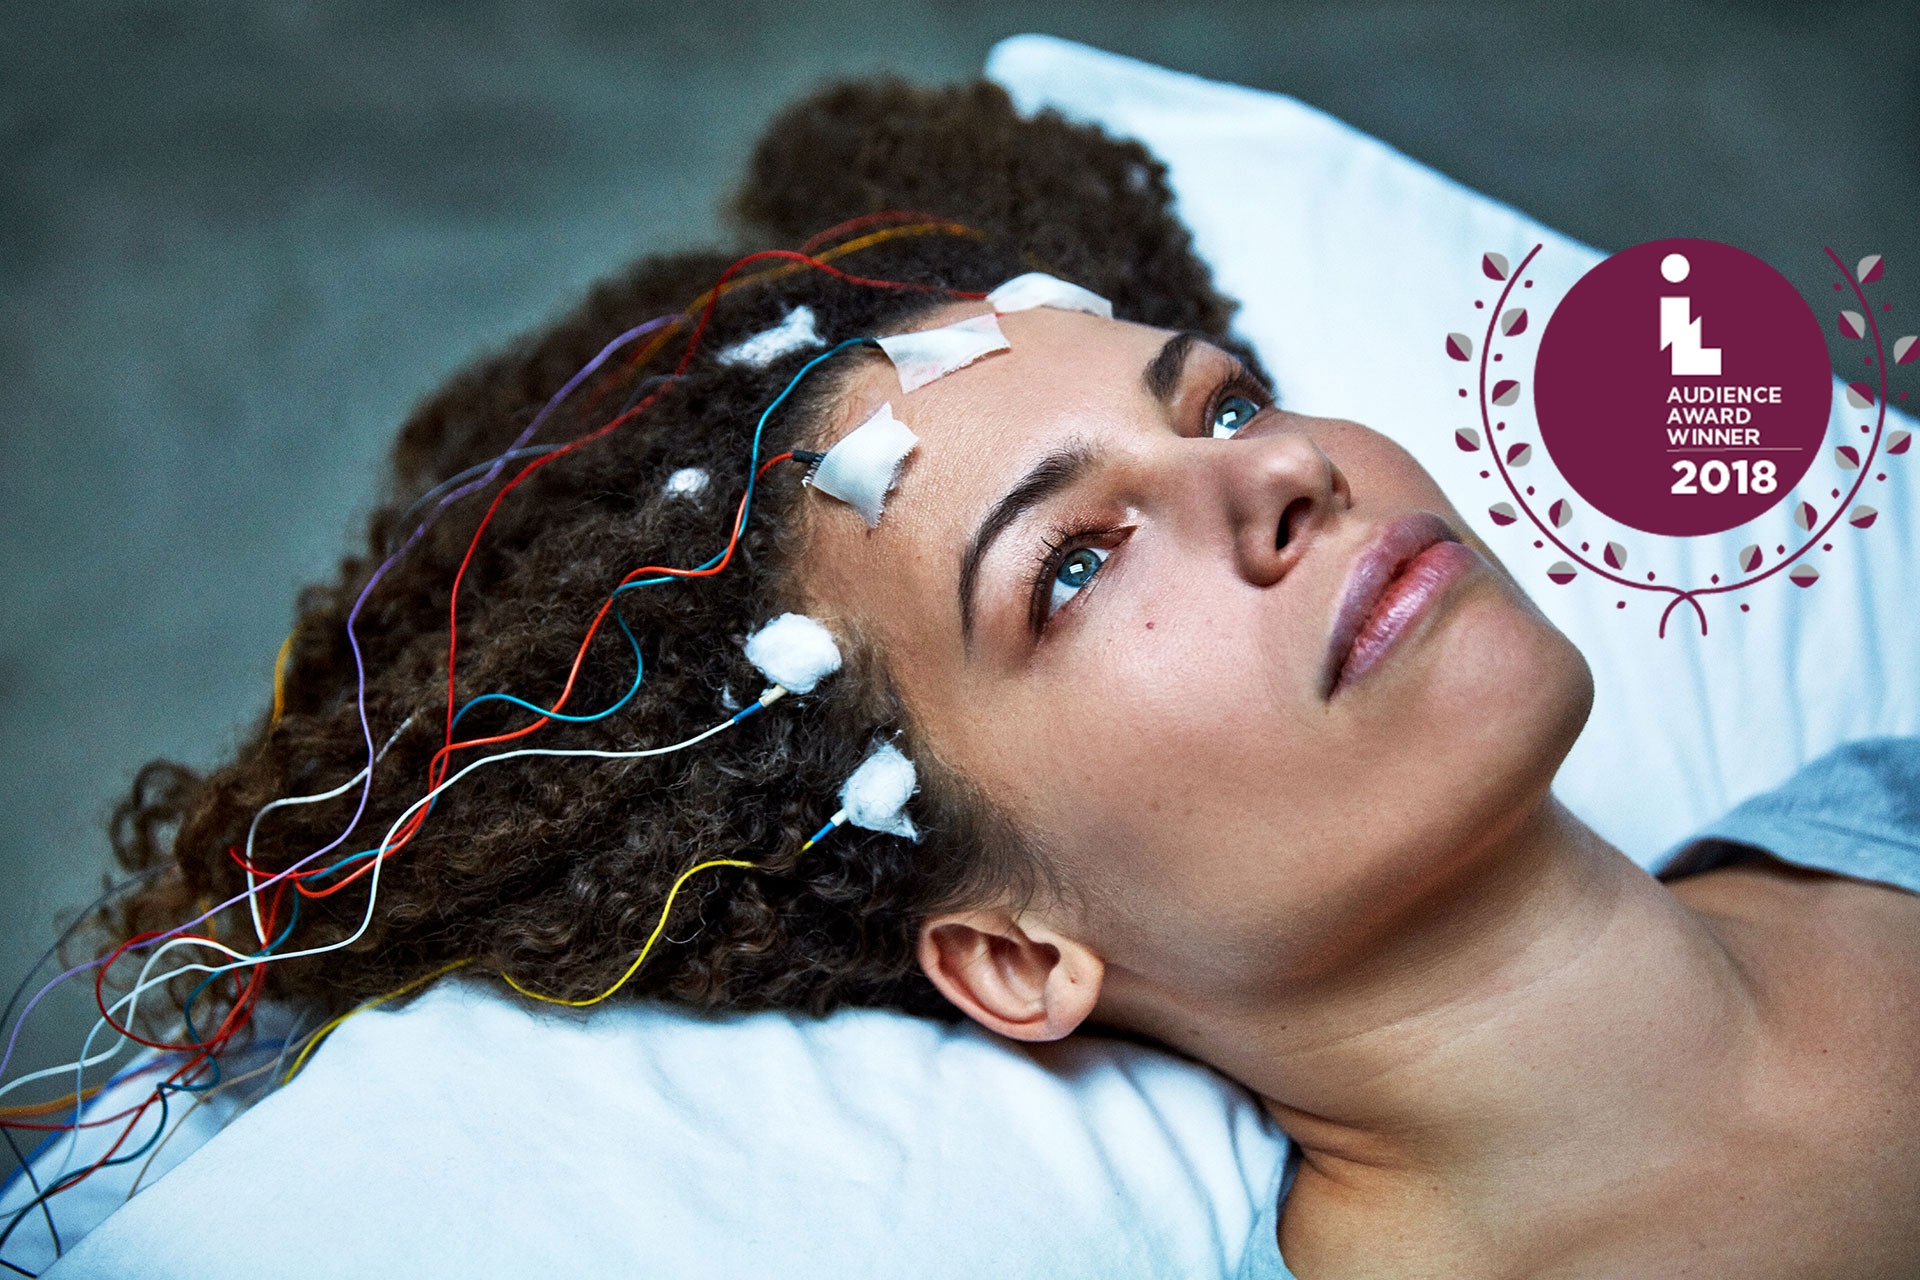 Unrest signature image with Jen Brea getting a test on her brainwaves, including IL audience award graphic now